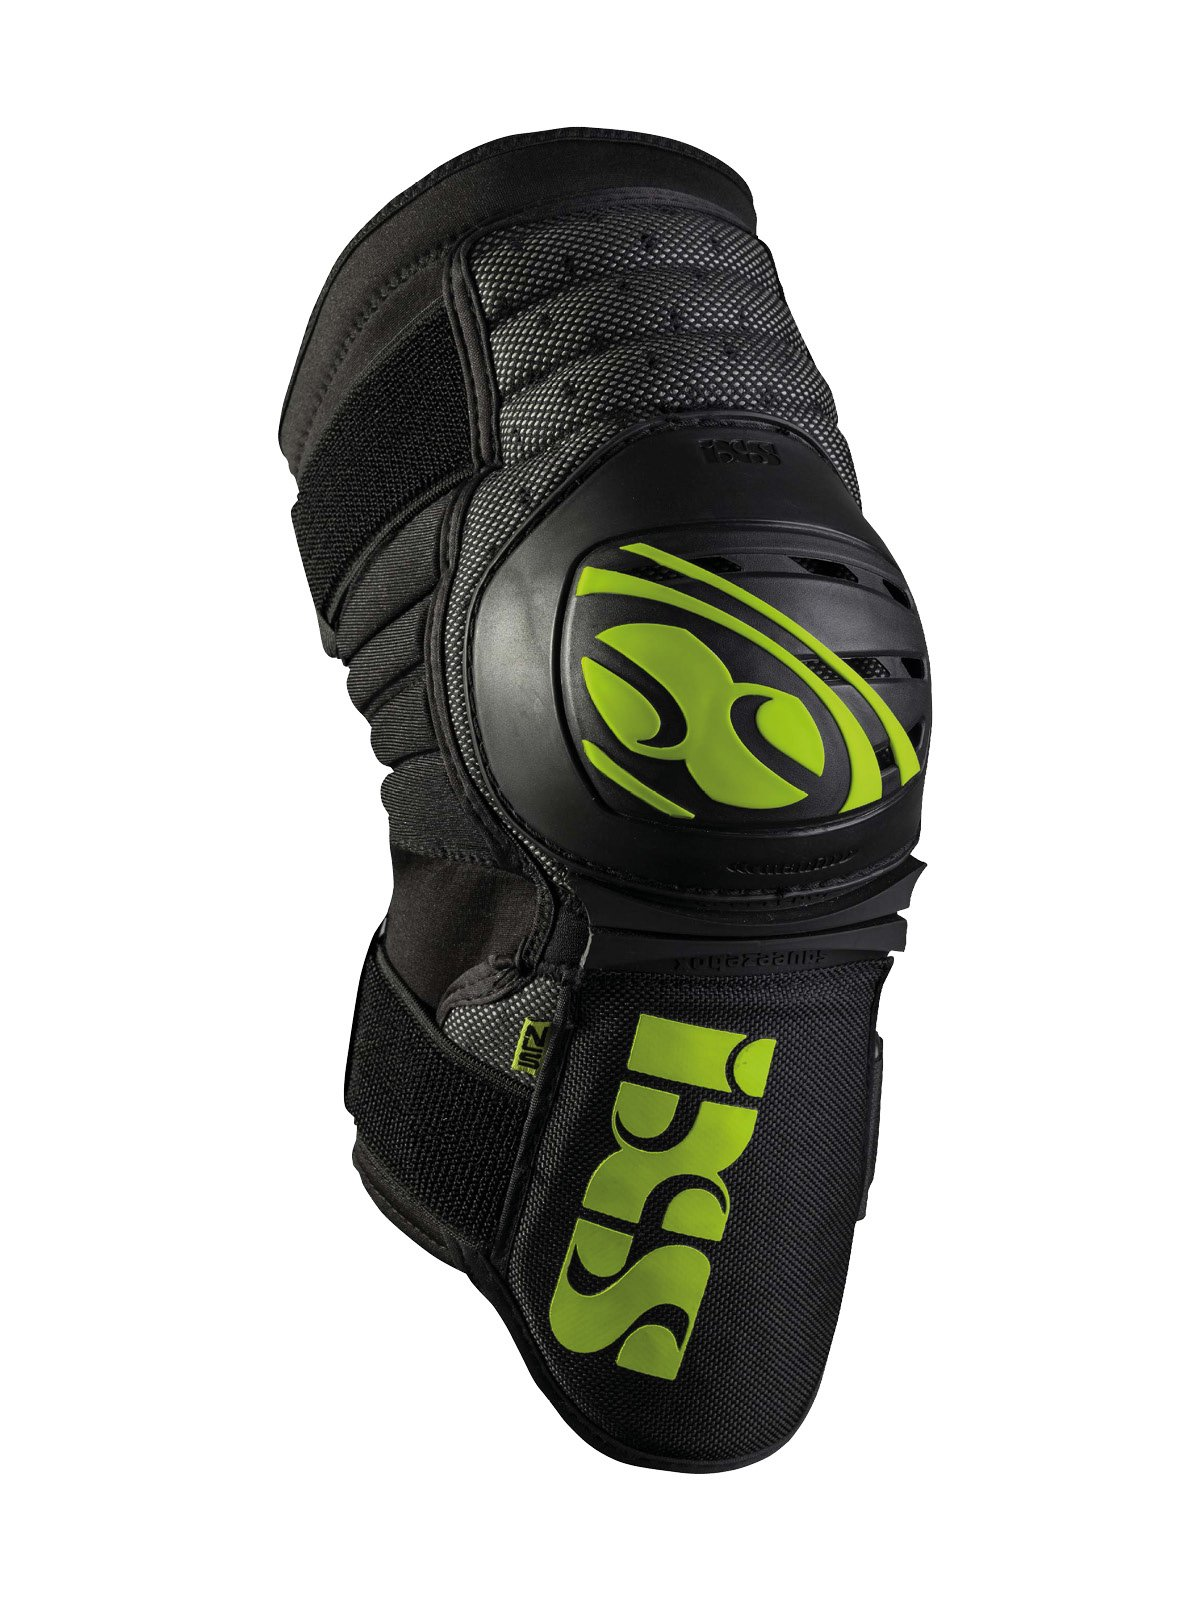 iXS Dagger Knee/Shin Guard - 482-510-3605 (Green - M) by IXS